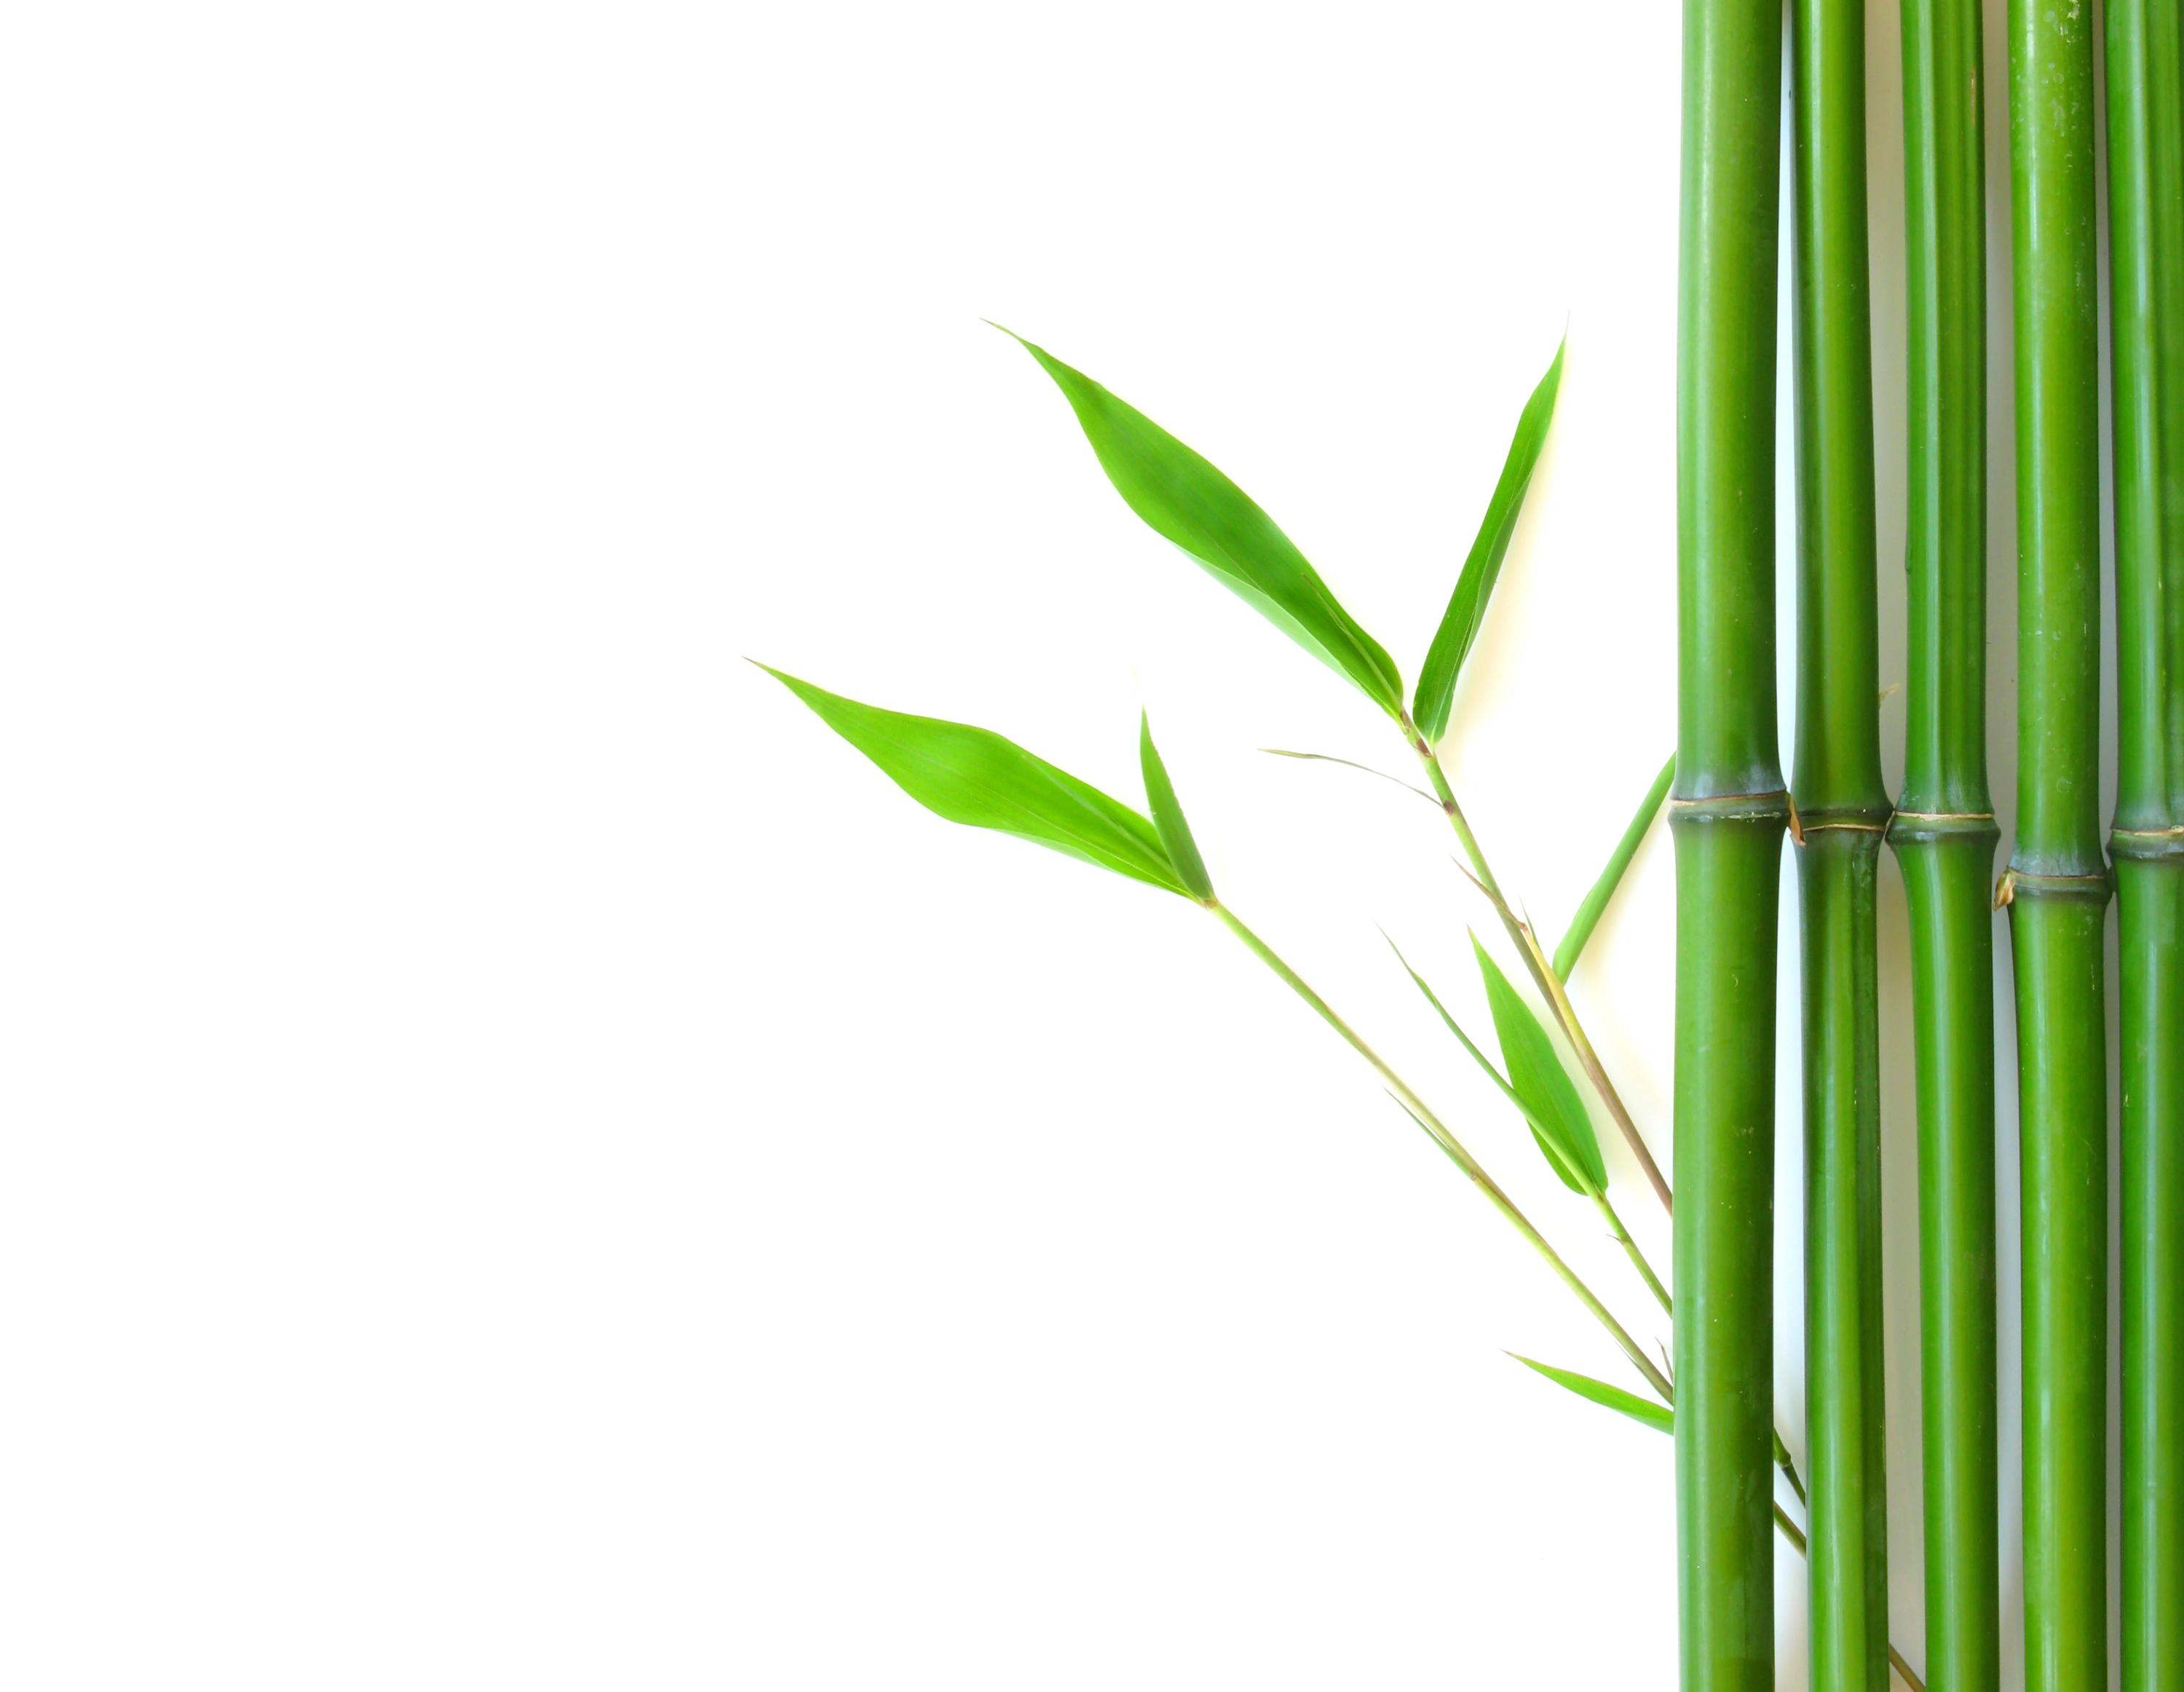 Bamboo Plant Images Free Clip Art